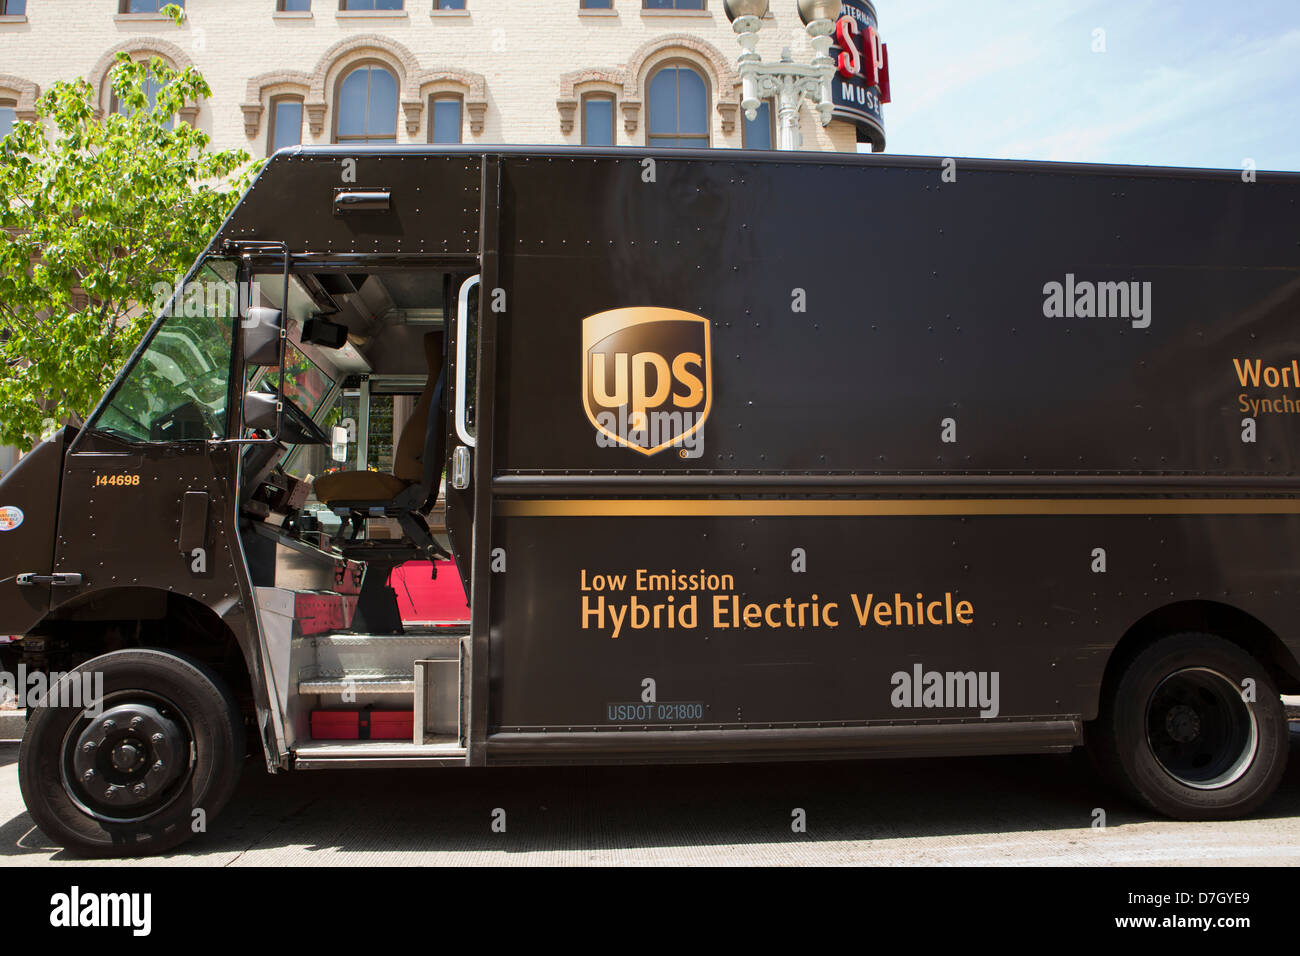 UPS low emission hybrid electric delivery truck - Stock Image